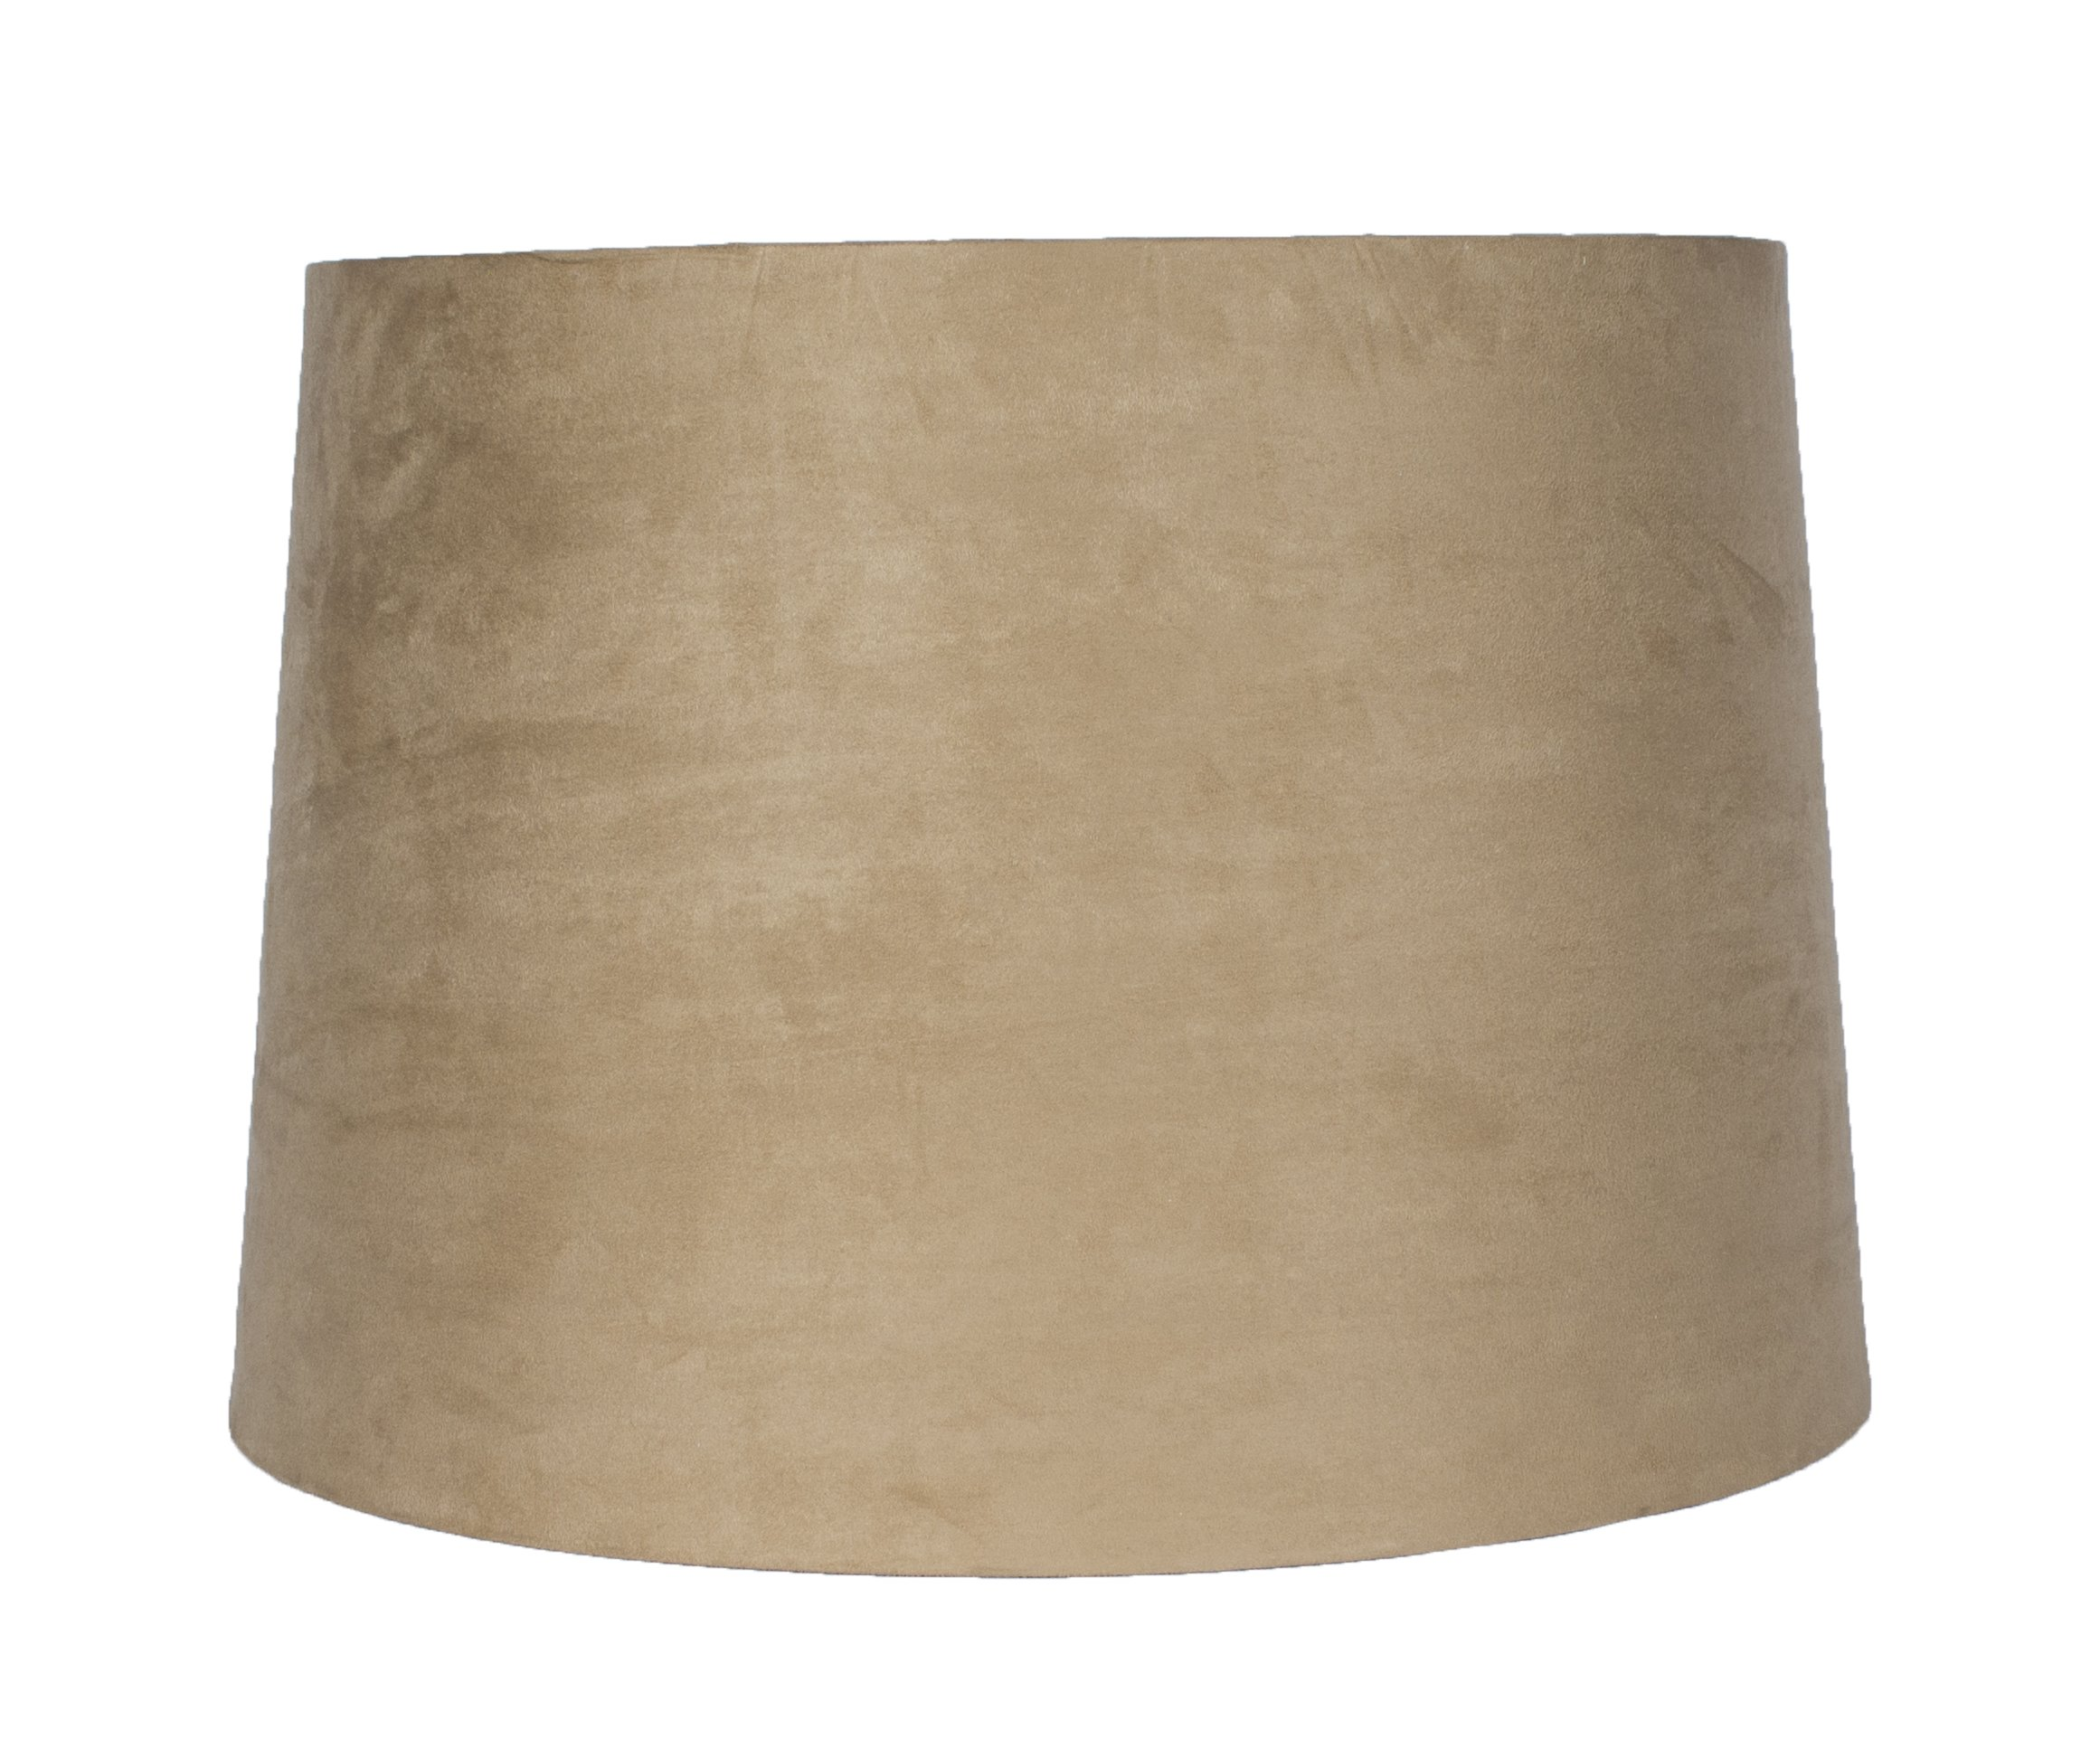 Urbanest French Drum Suede Lampshade, 14-inch by 16-inch by 11-inch, Spider Fitter, Tan